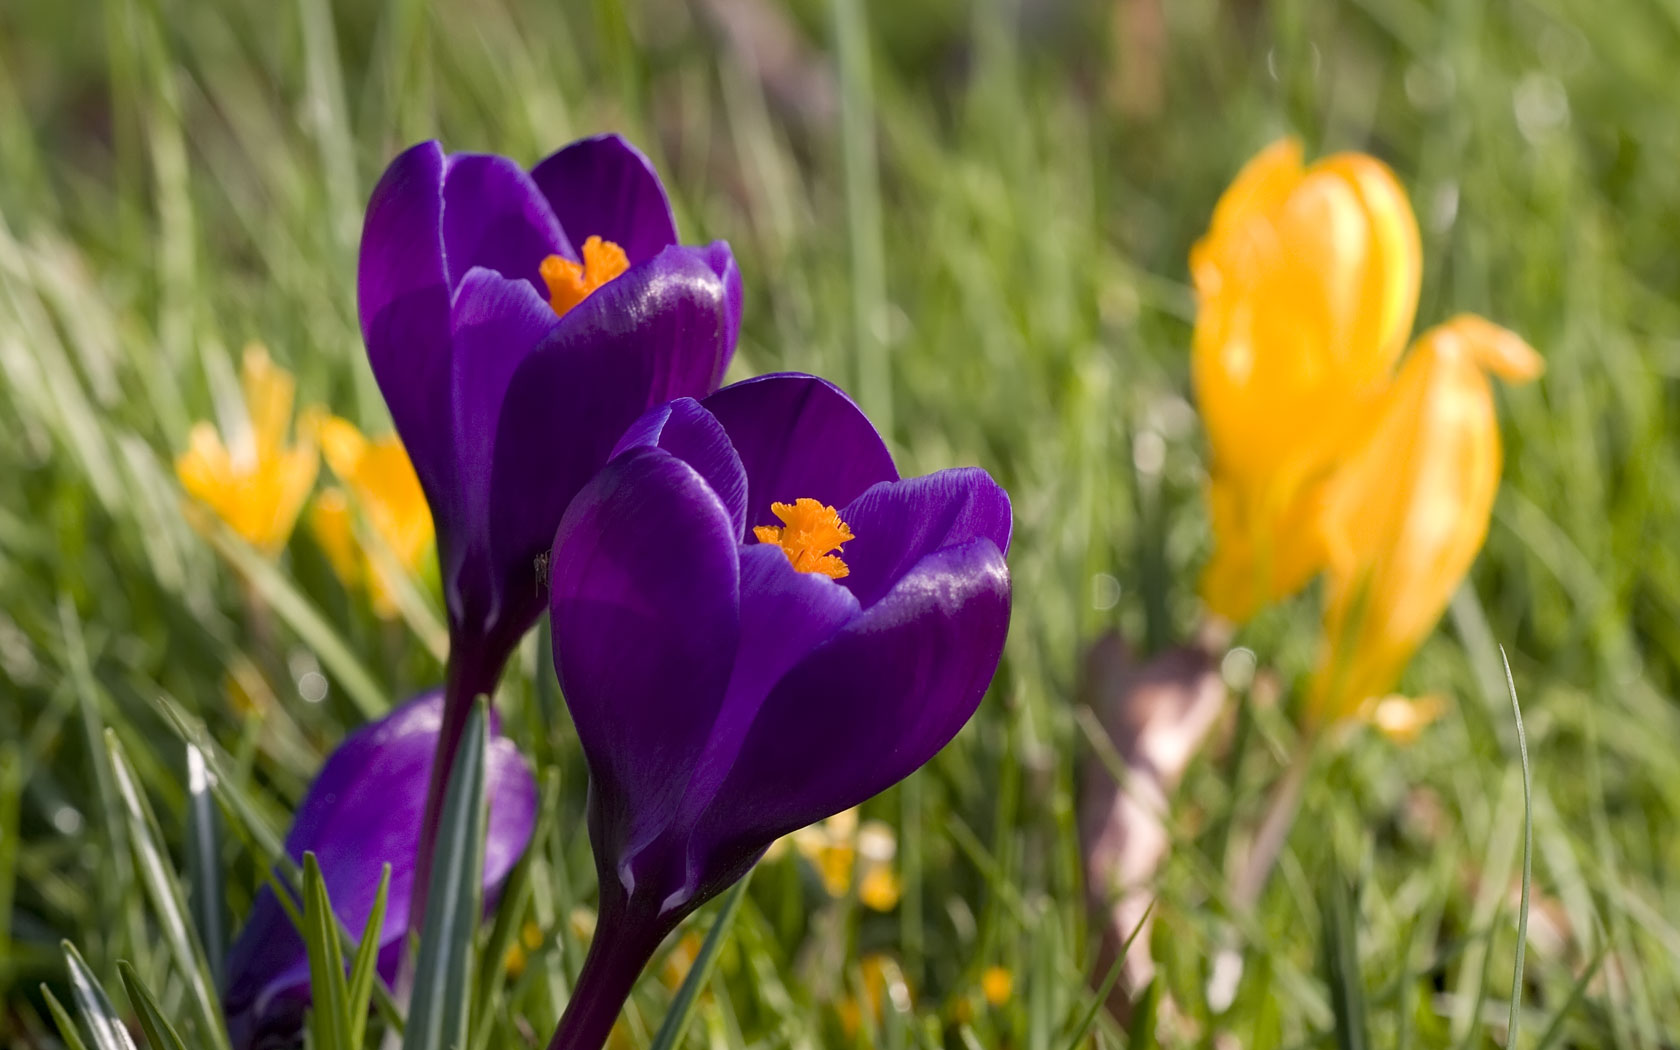 Spring Crocus Flowers Background Wallpaper 1680x1050